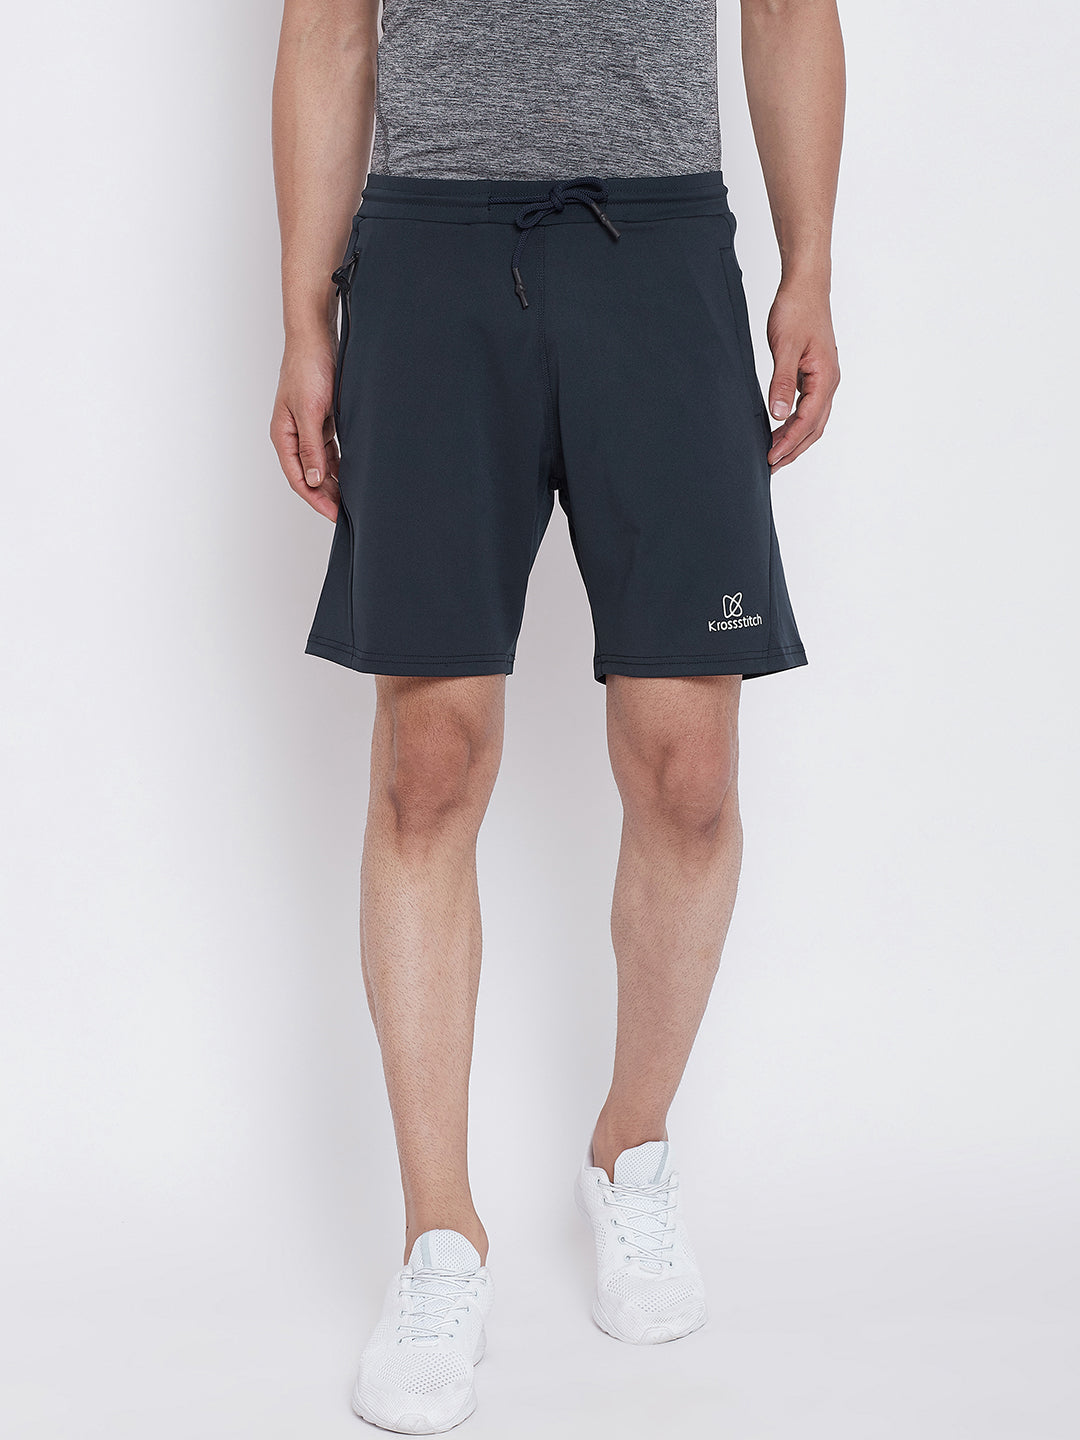 KROSSSTITCH  Men's Running & Sports Shorts with Zipper Side Pocket |Active Wear